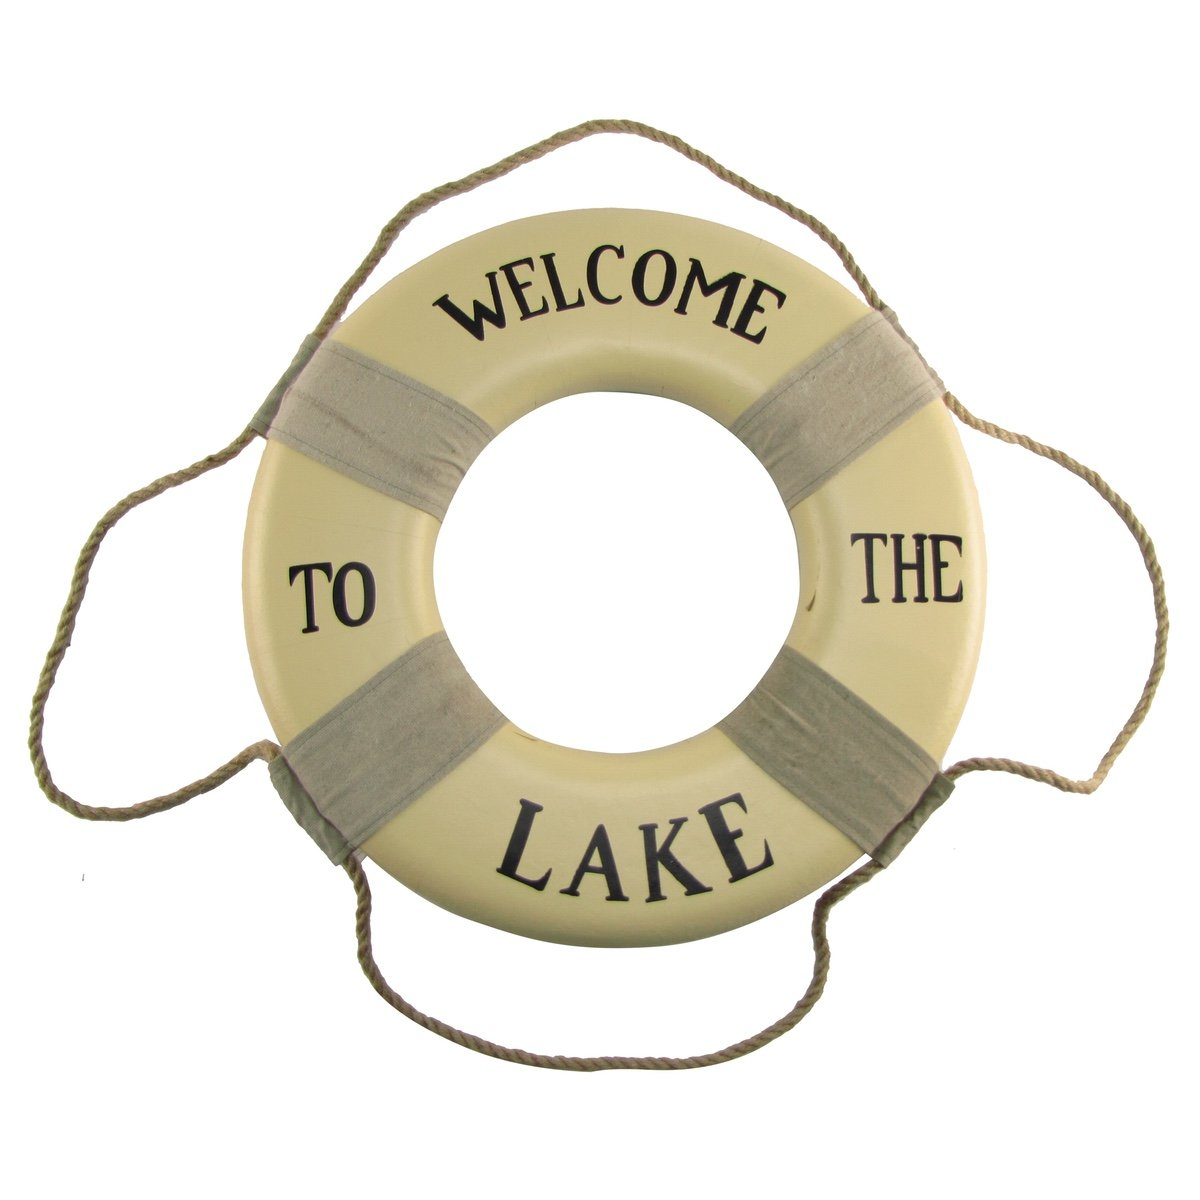 Welcome aboard boat ships life ring clock - Amazon Com Welcome To The Lake Life Preserver Saver Ring Sign Cabin Lodge Home Wall Decor Home Kitchen